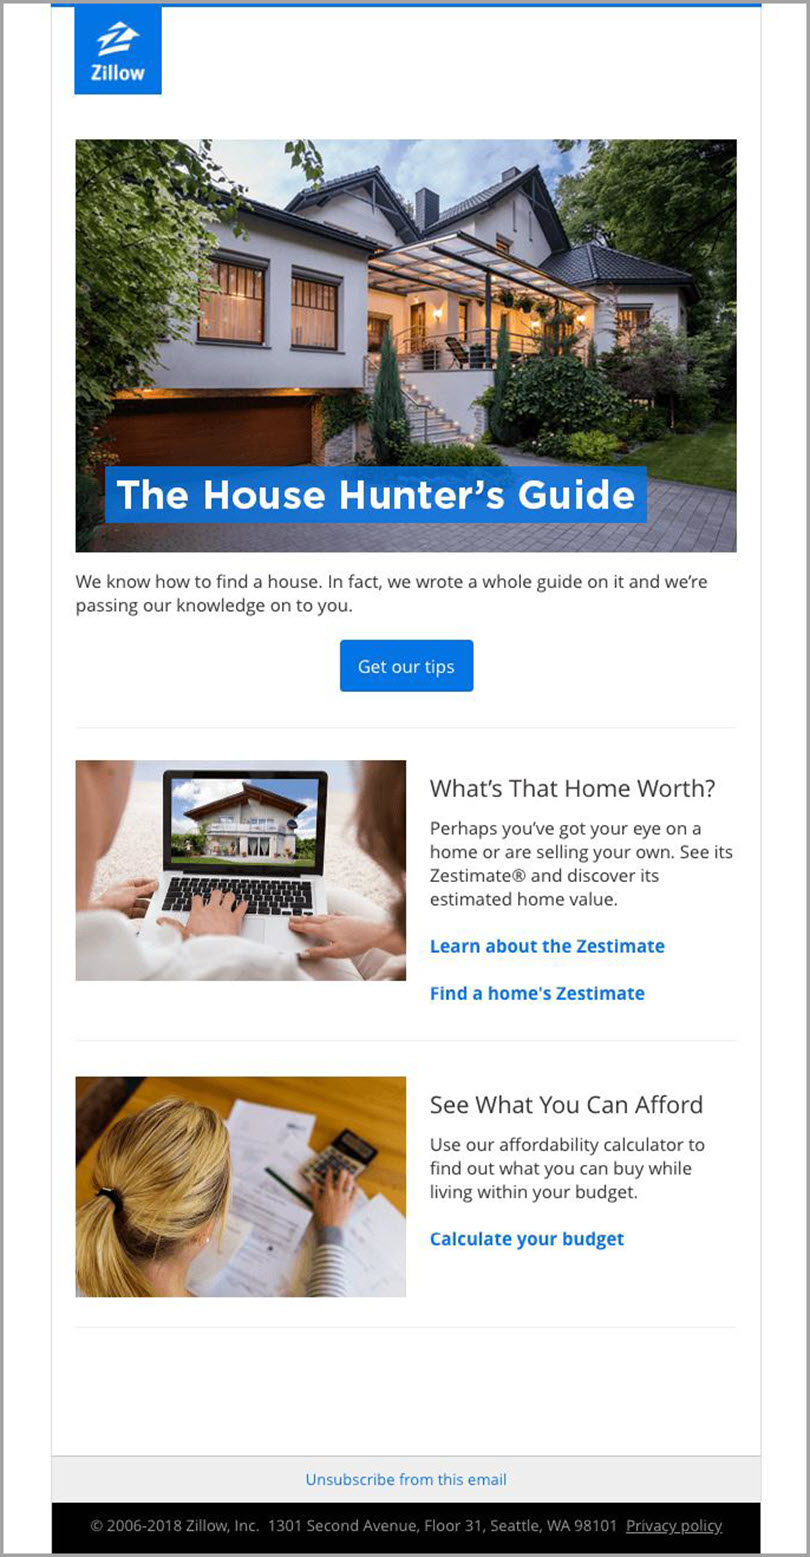 Use attractive Static Images to support the message like email from zillow for rich media